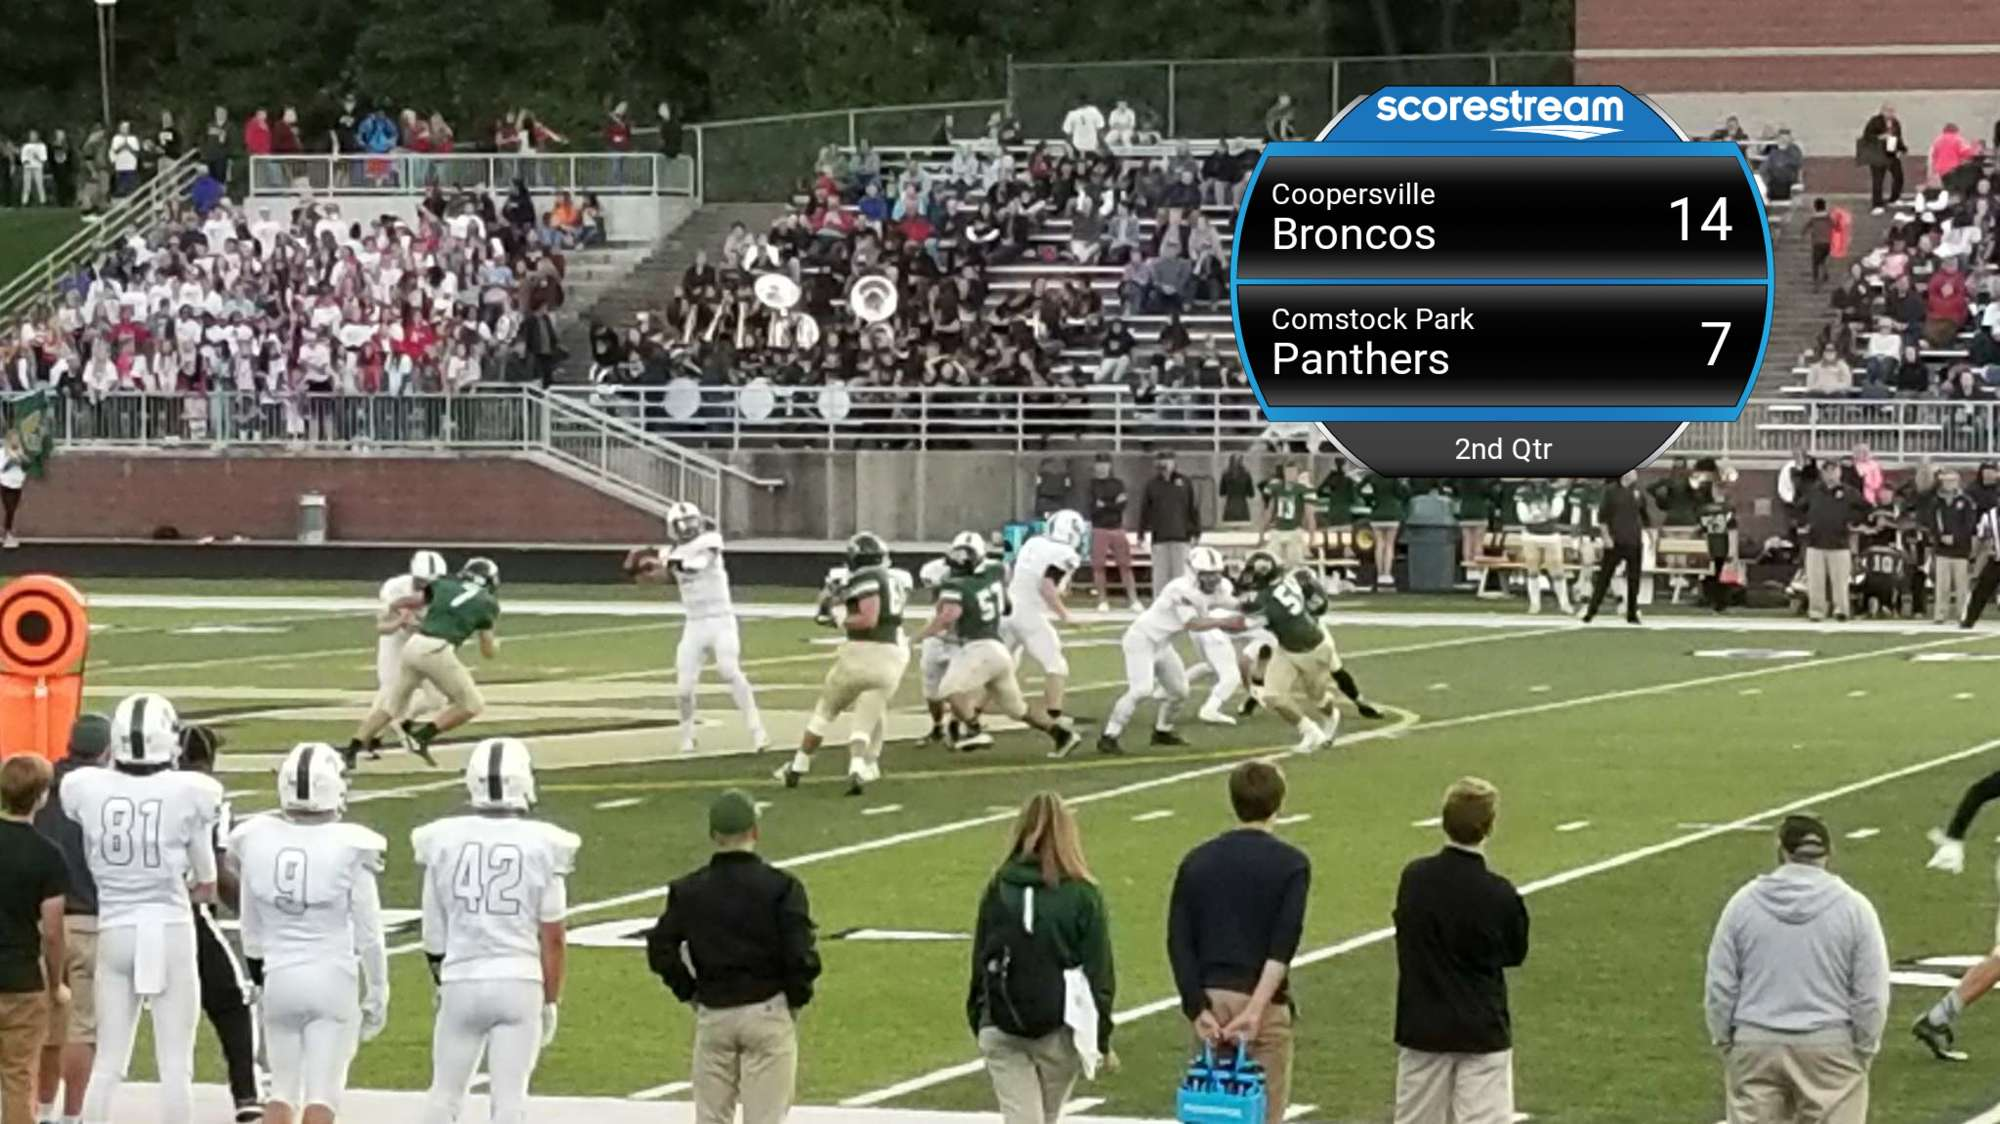 The Comstock Park Panthers Defeat The Coopersville Broncos 42 To 27